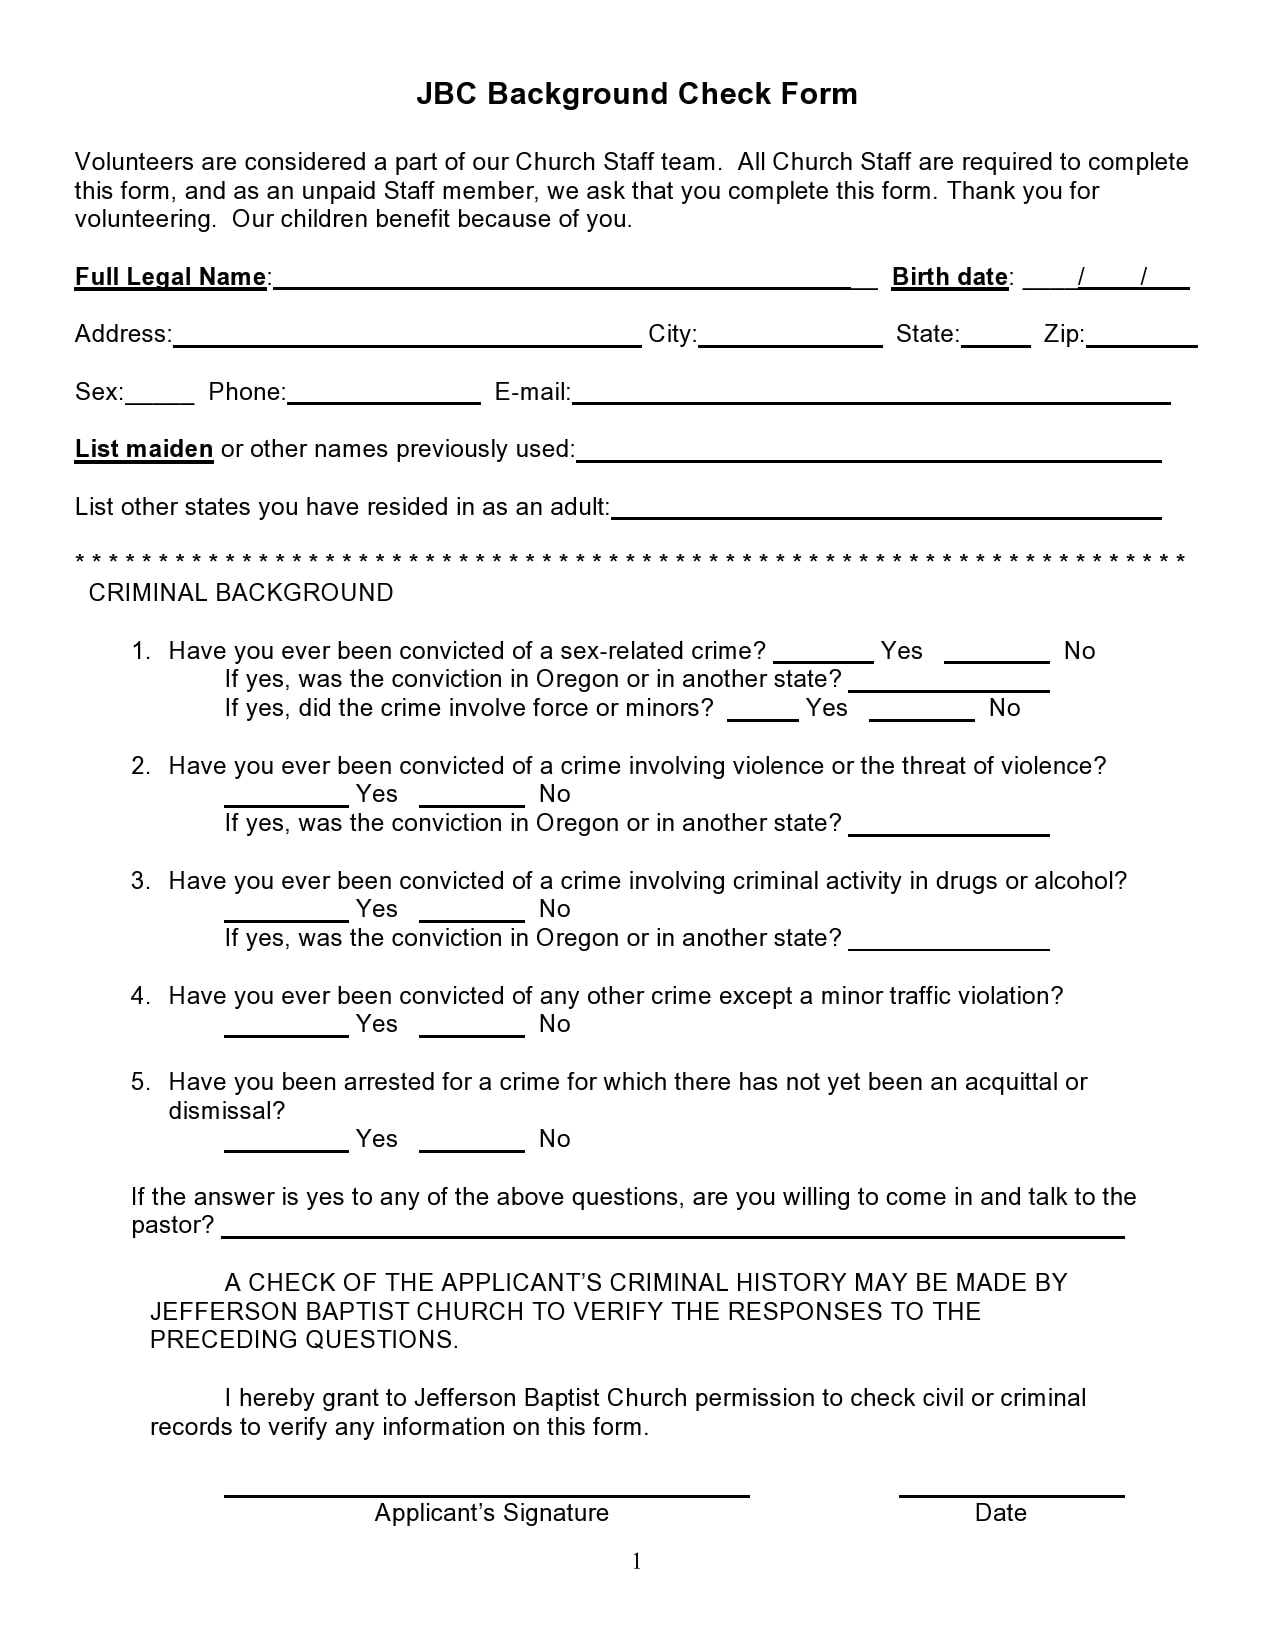 background check form 19